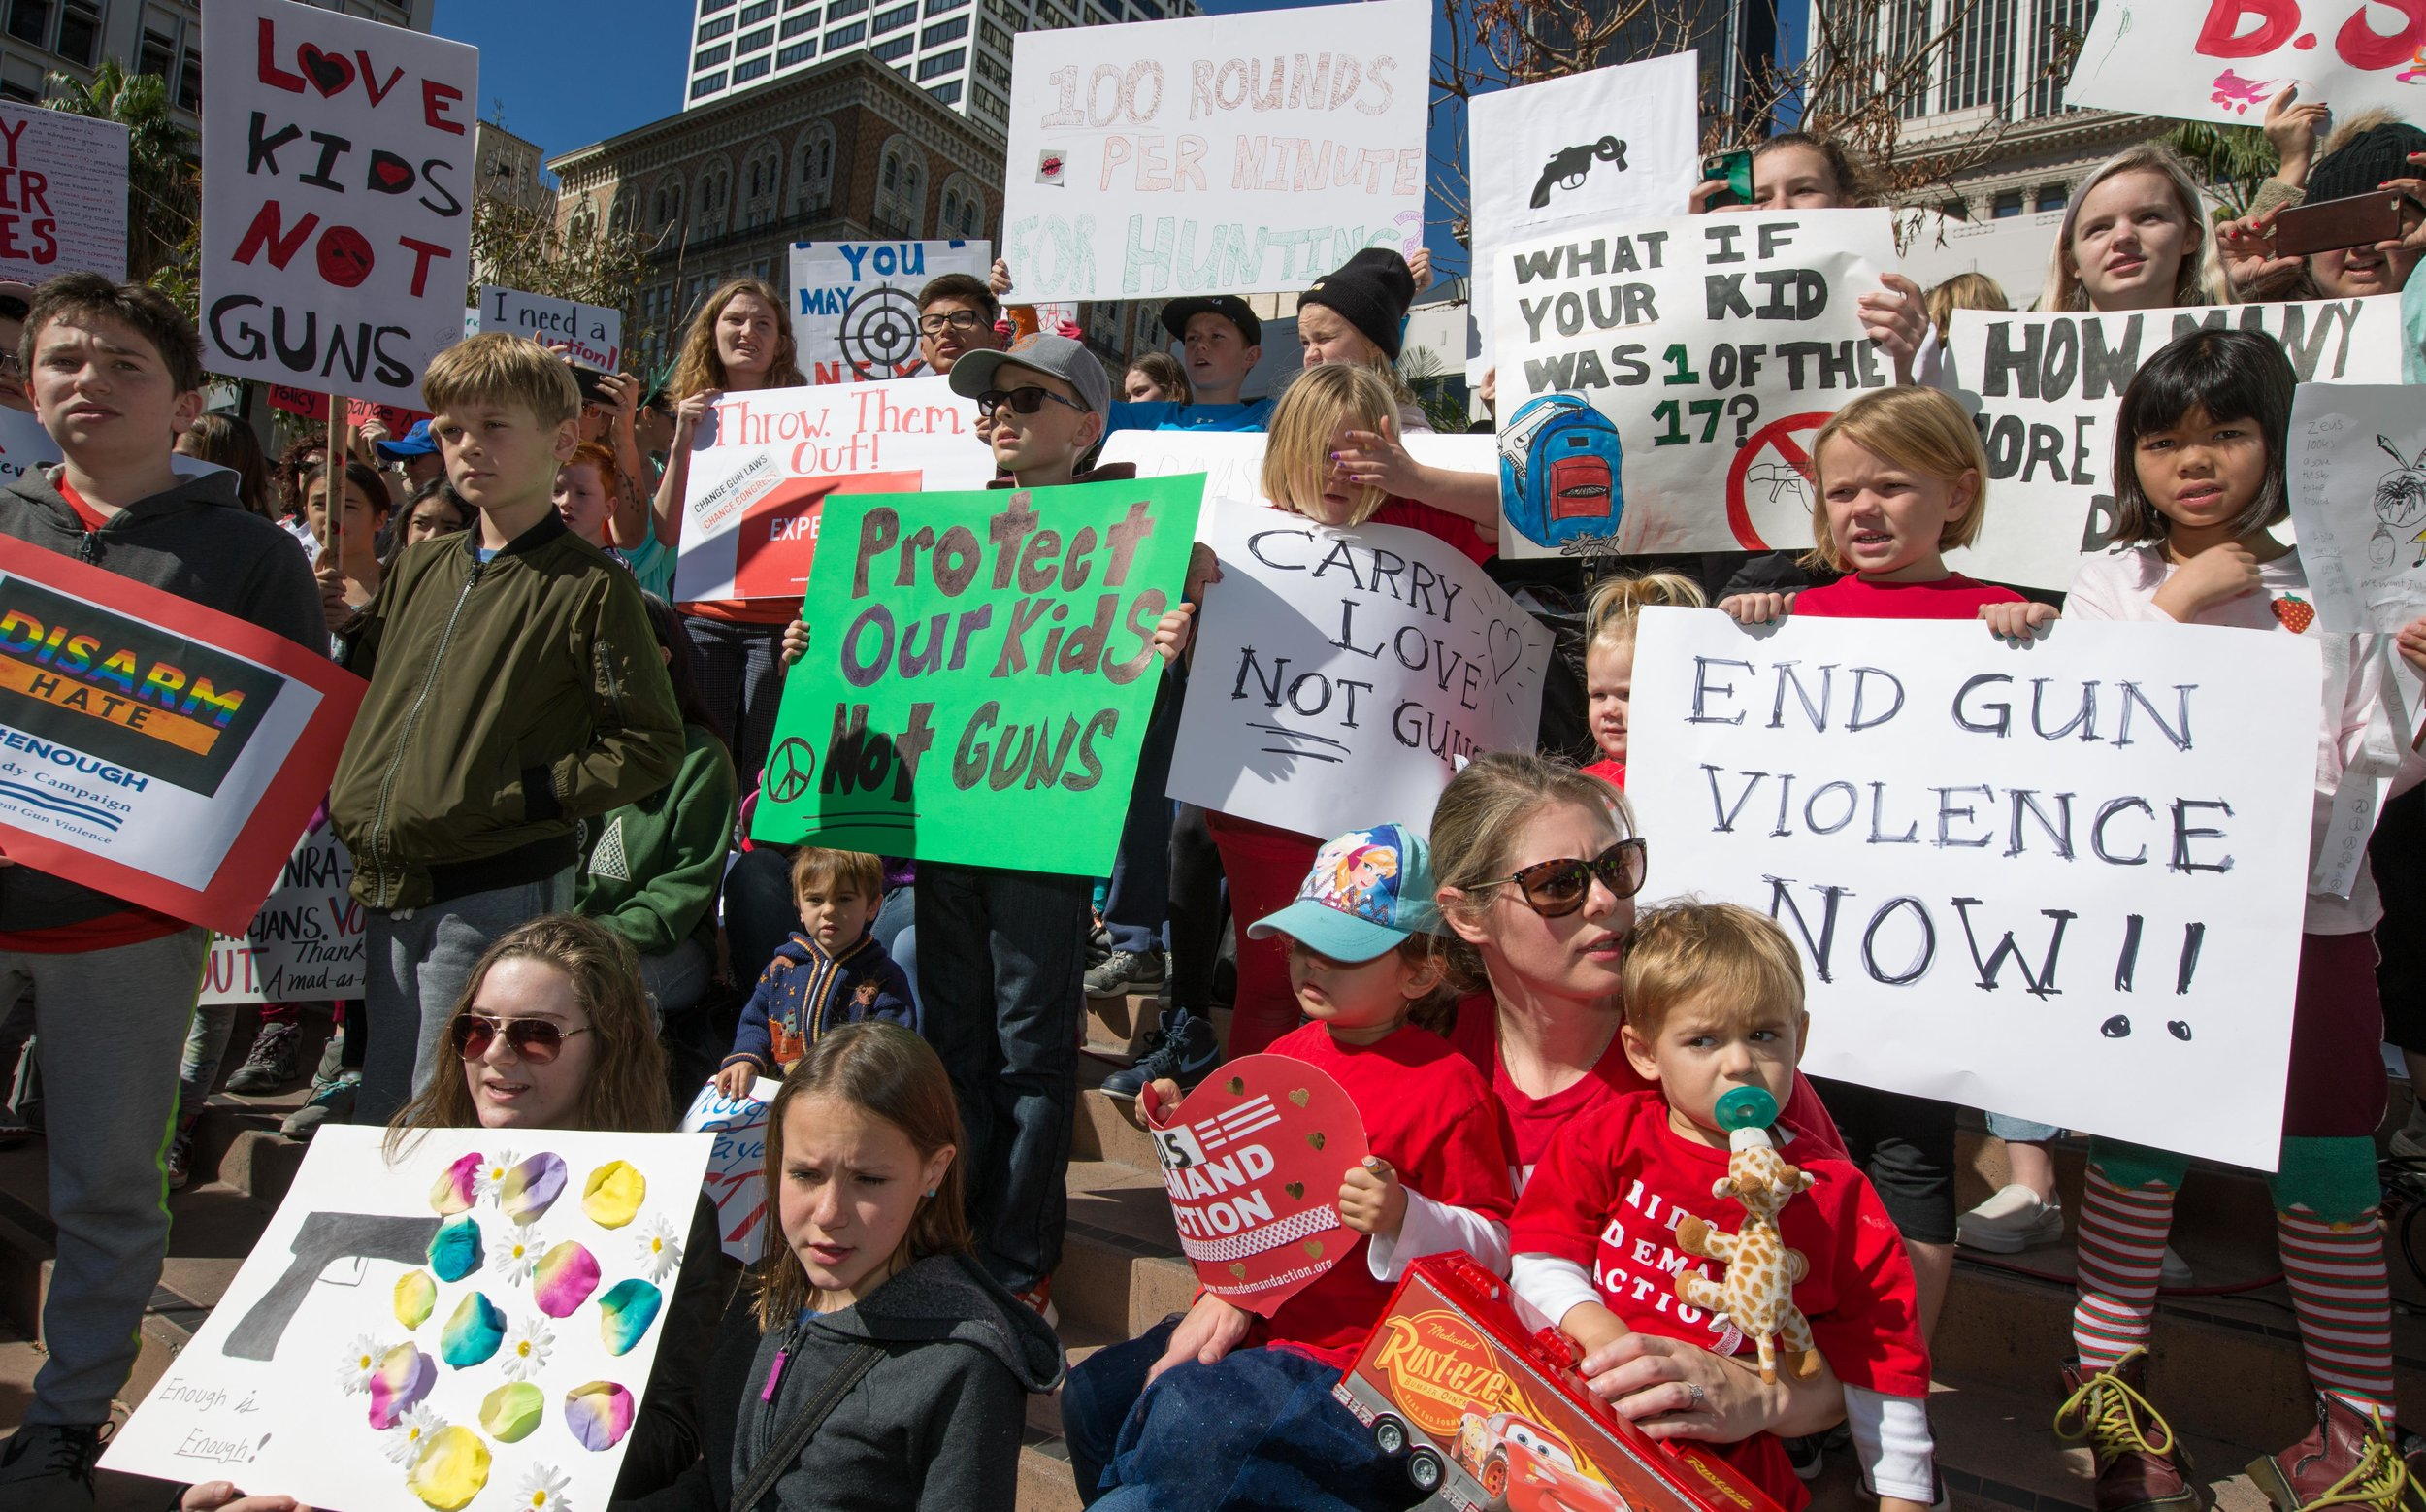 Hundreds of peaceful protestors gathered in Downtown Los Angeles, while some brought their children, most holding signs, as speakers took to the podium to talk about stricter gun control laws in the U.S. on Monday February 19, 2018. Pershing Square, Los Angeles Calif.. (Photo By: Daniel Bowyer)